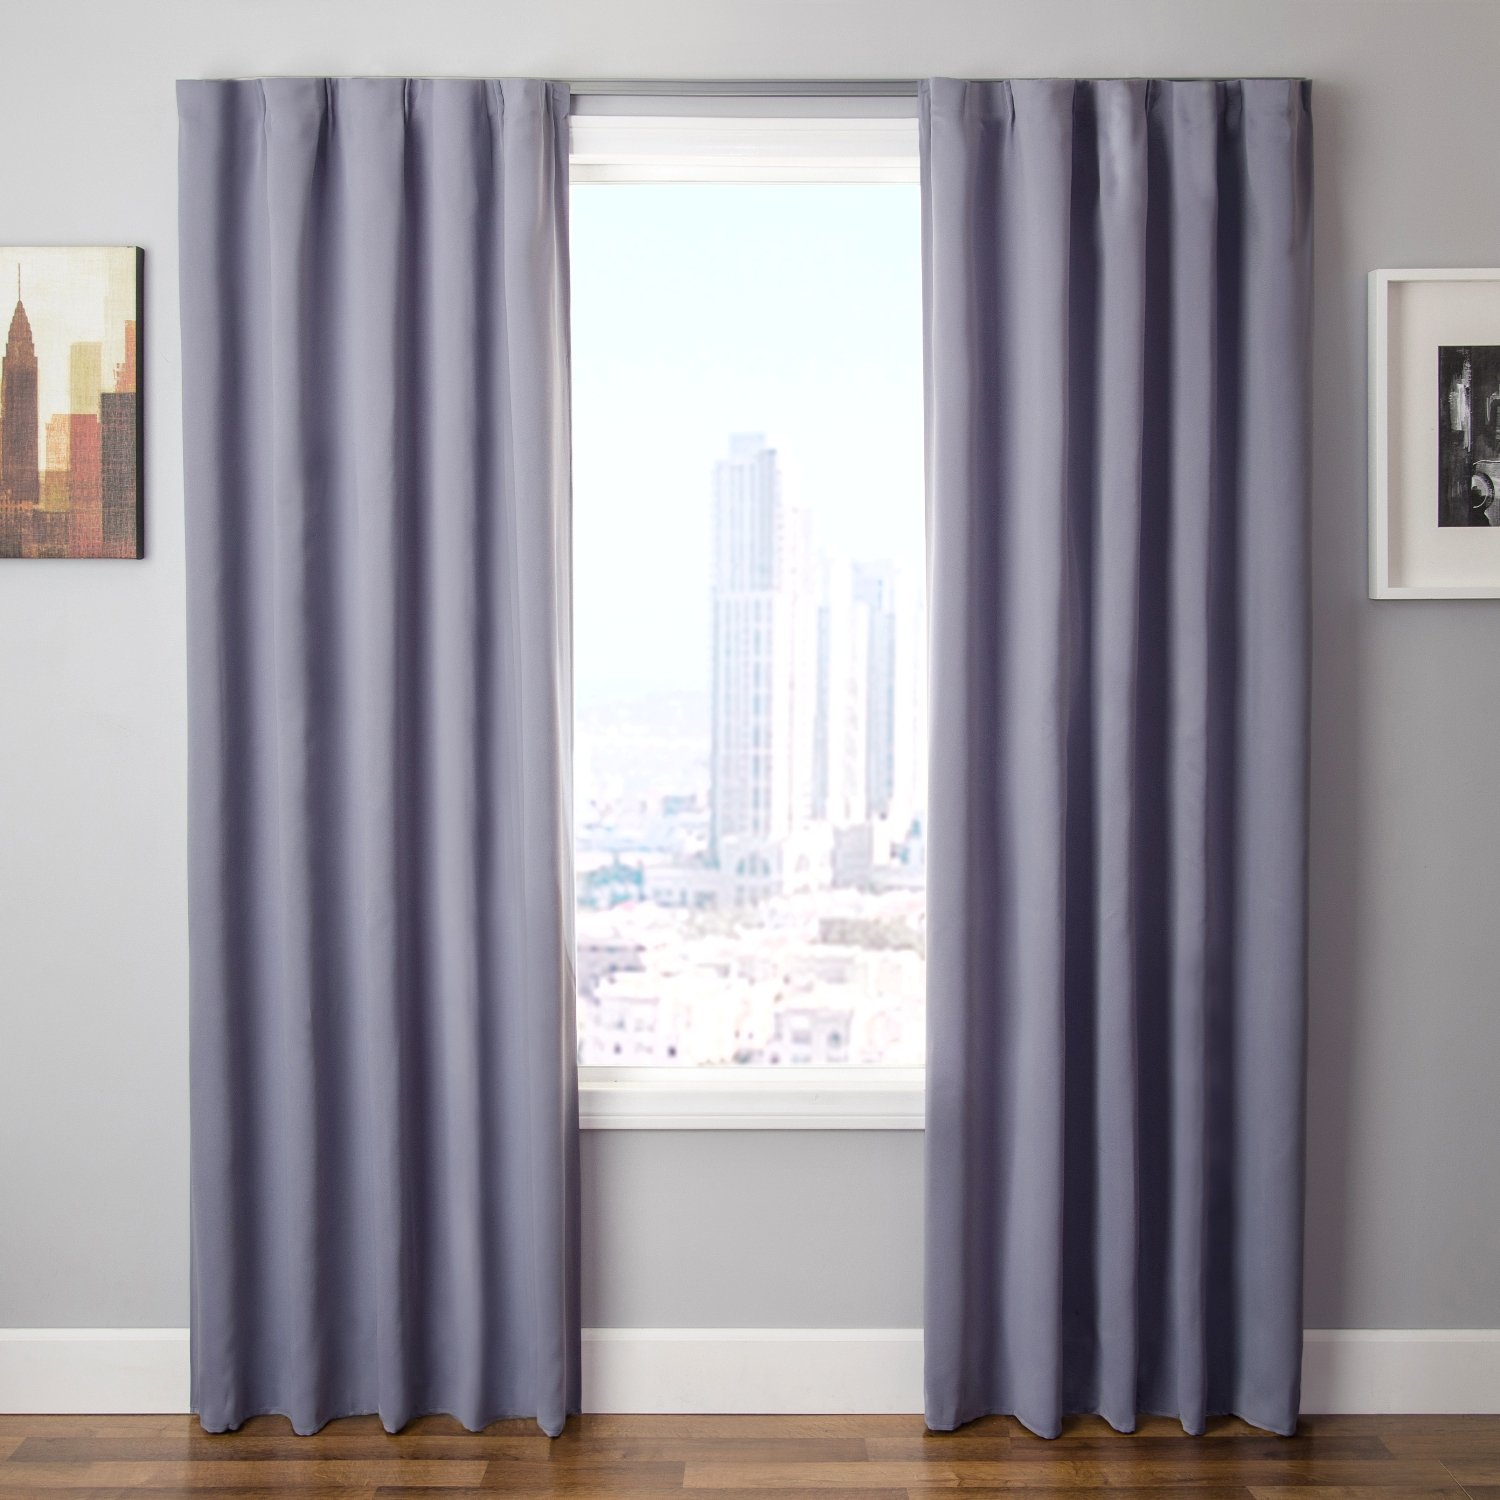 myers simple vicky tutorial creations too quick to long way curtains shorten